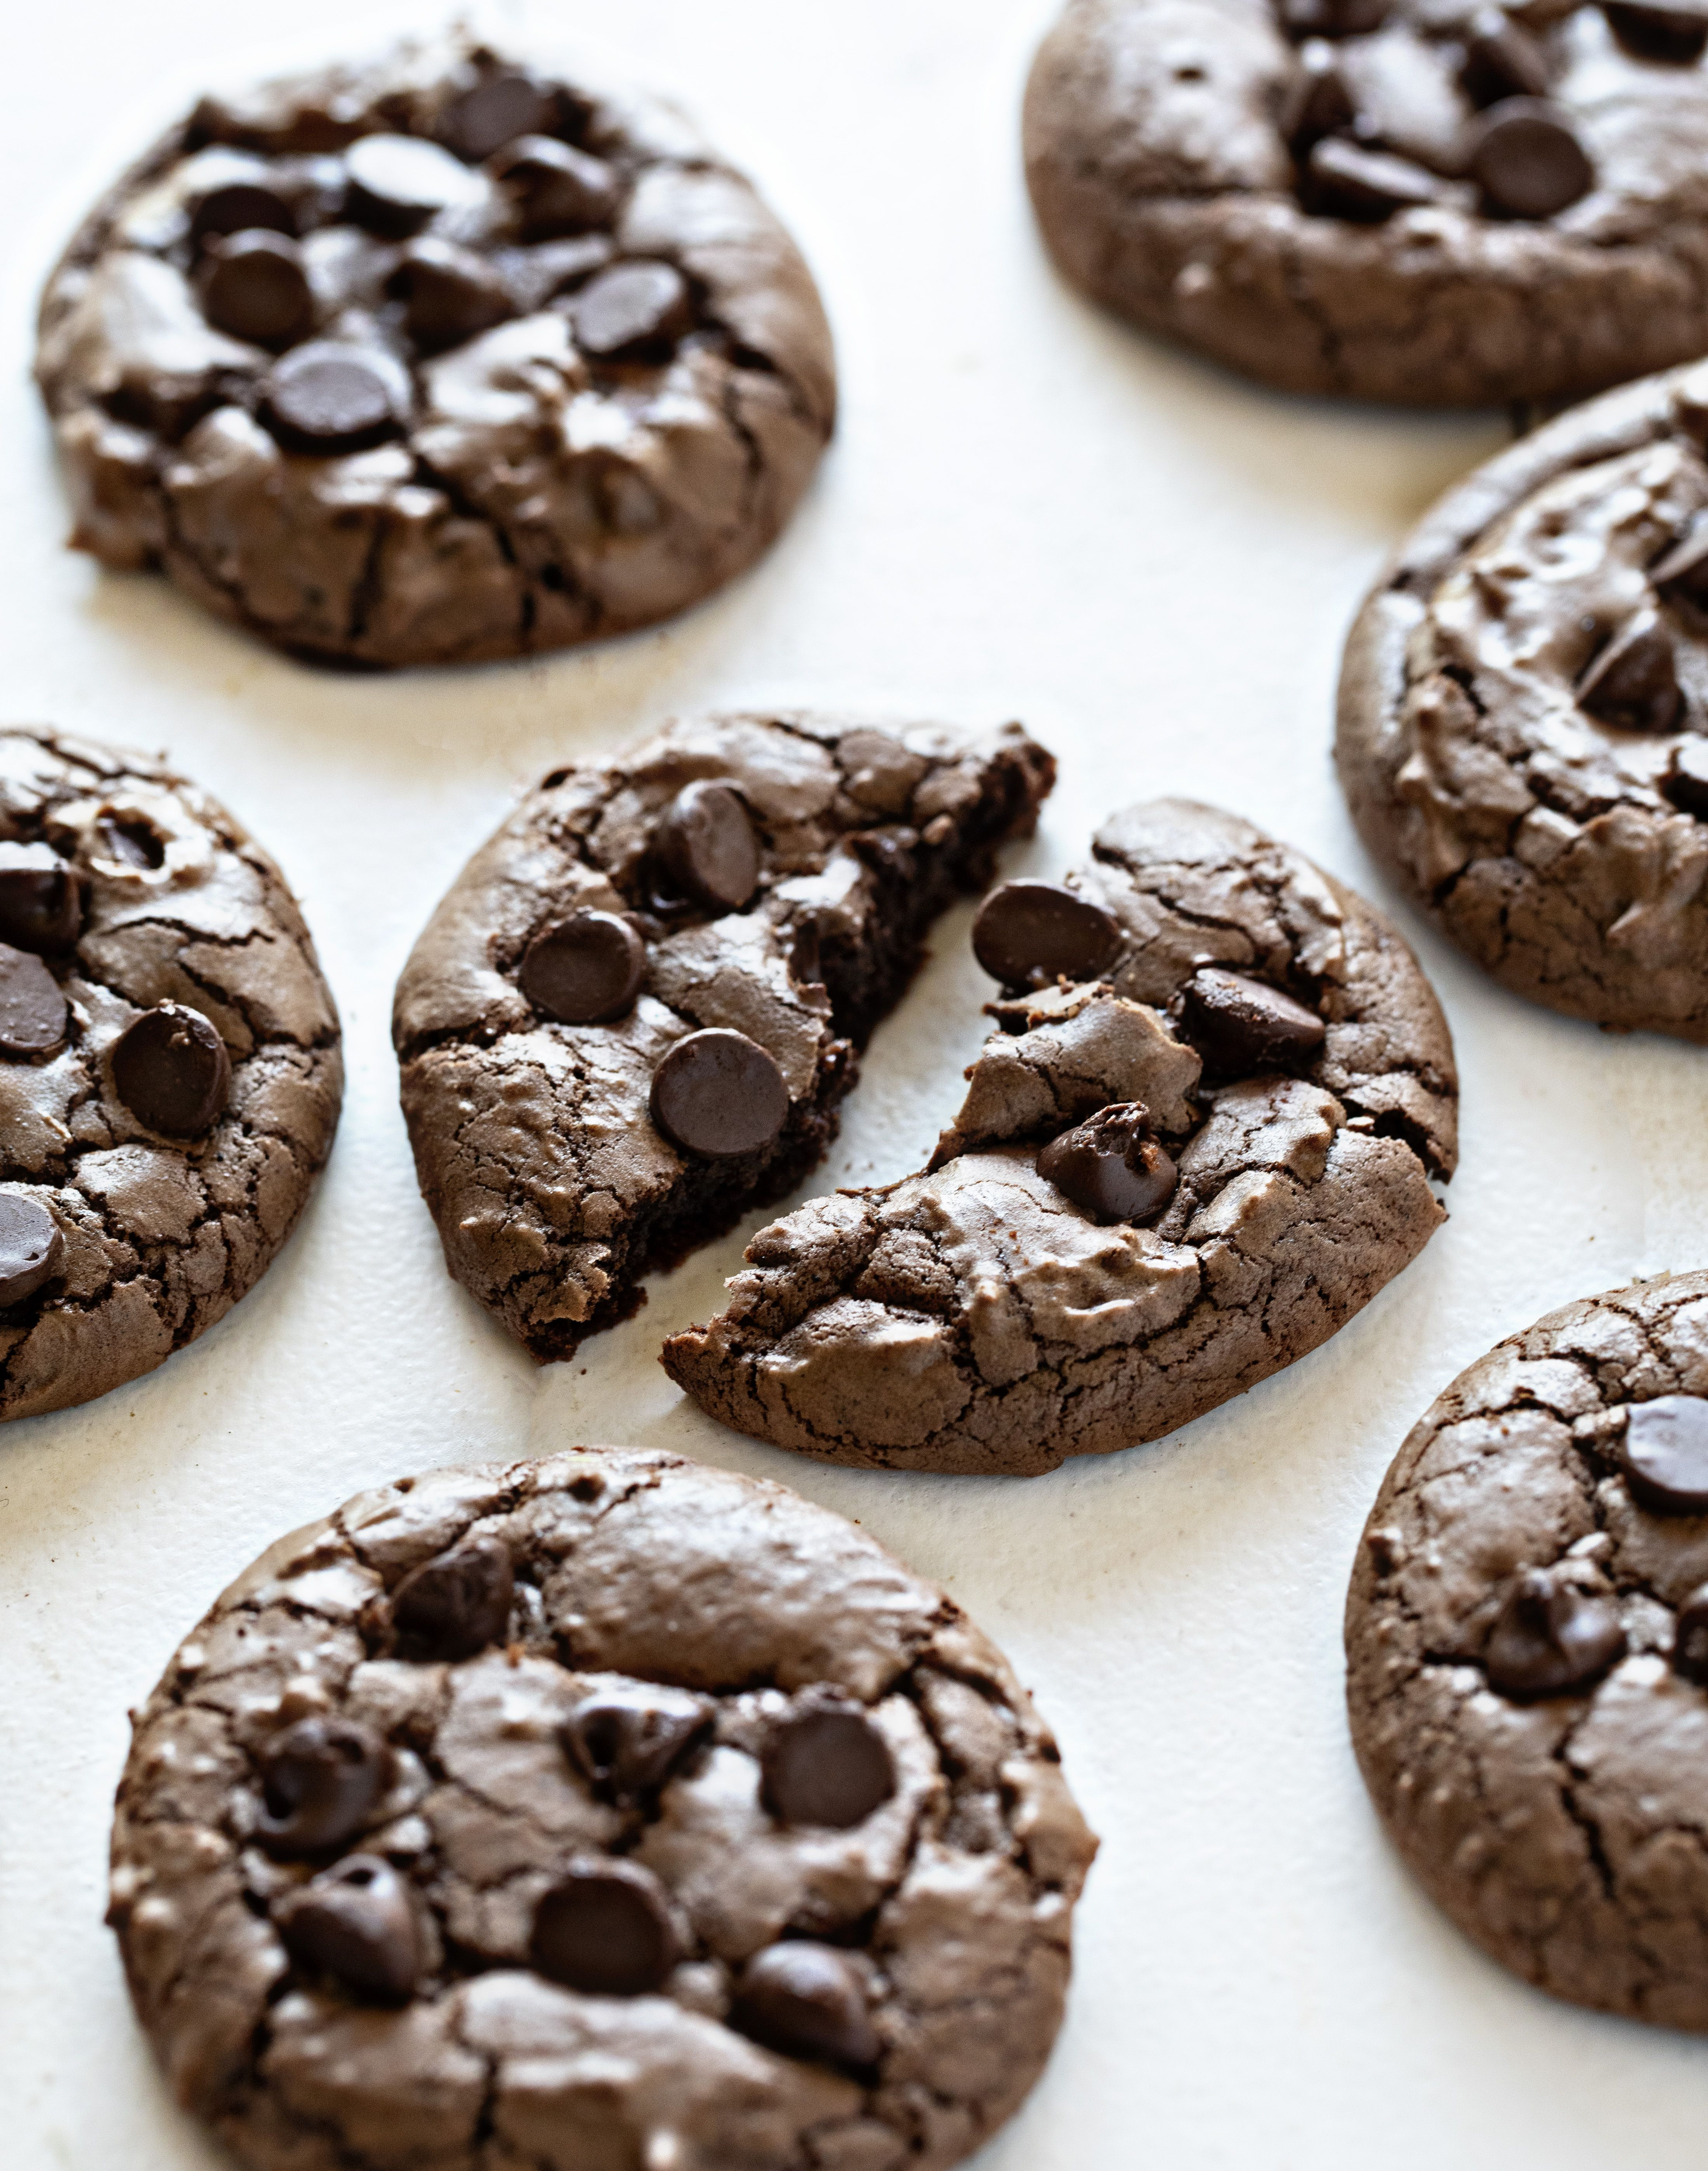 These Chocolate Espresso Cookies are seriously rich and chocolatey. When developing this recipe I wanted two things: intense flavor and the perfect crispy outer edge.